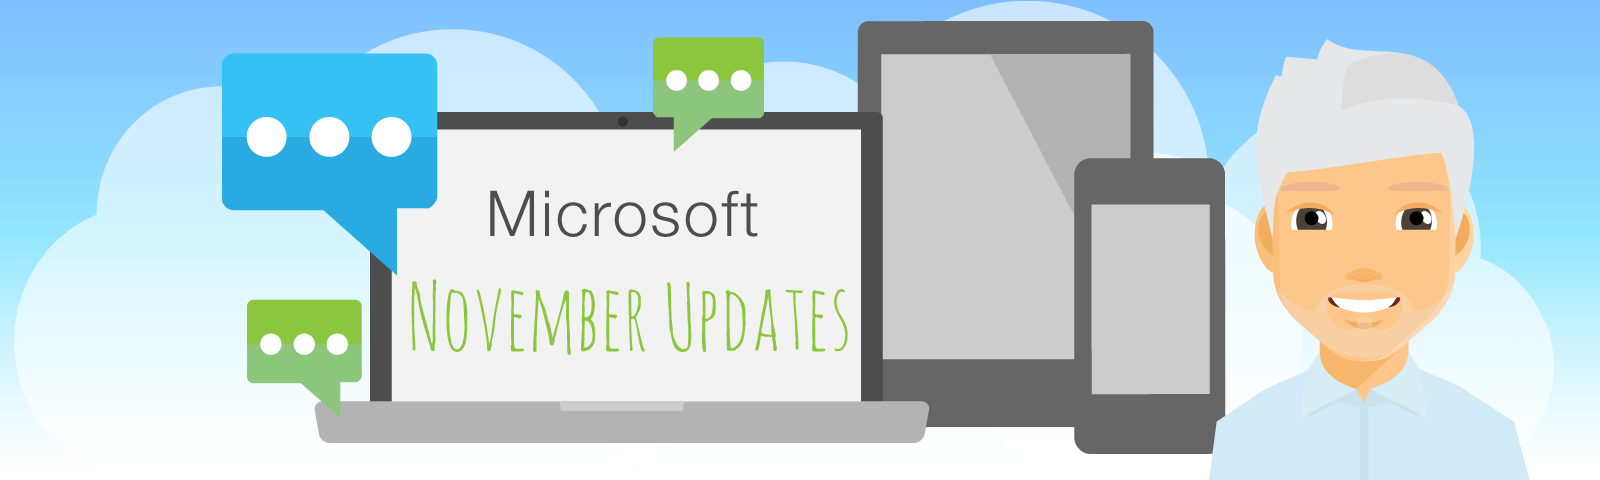 Image to show Mark's Microsoft monthly update blog for November